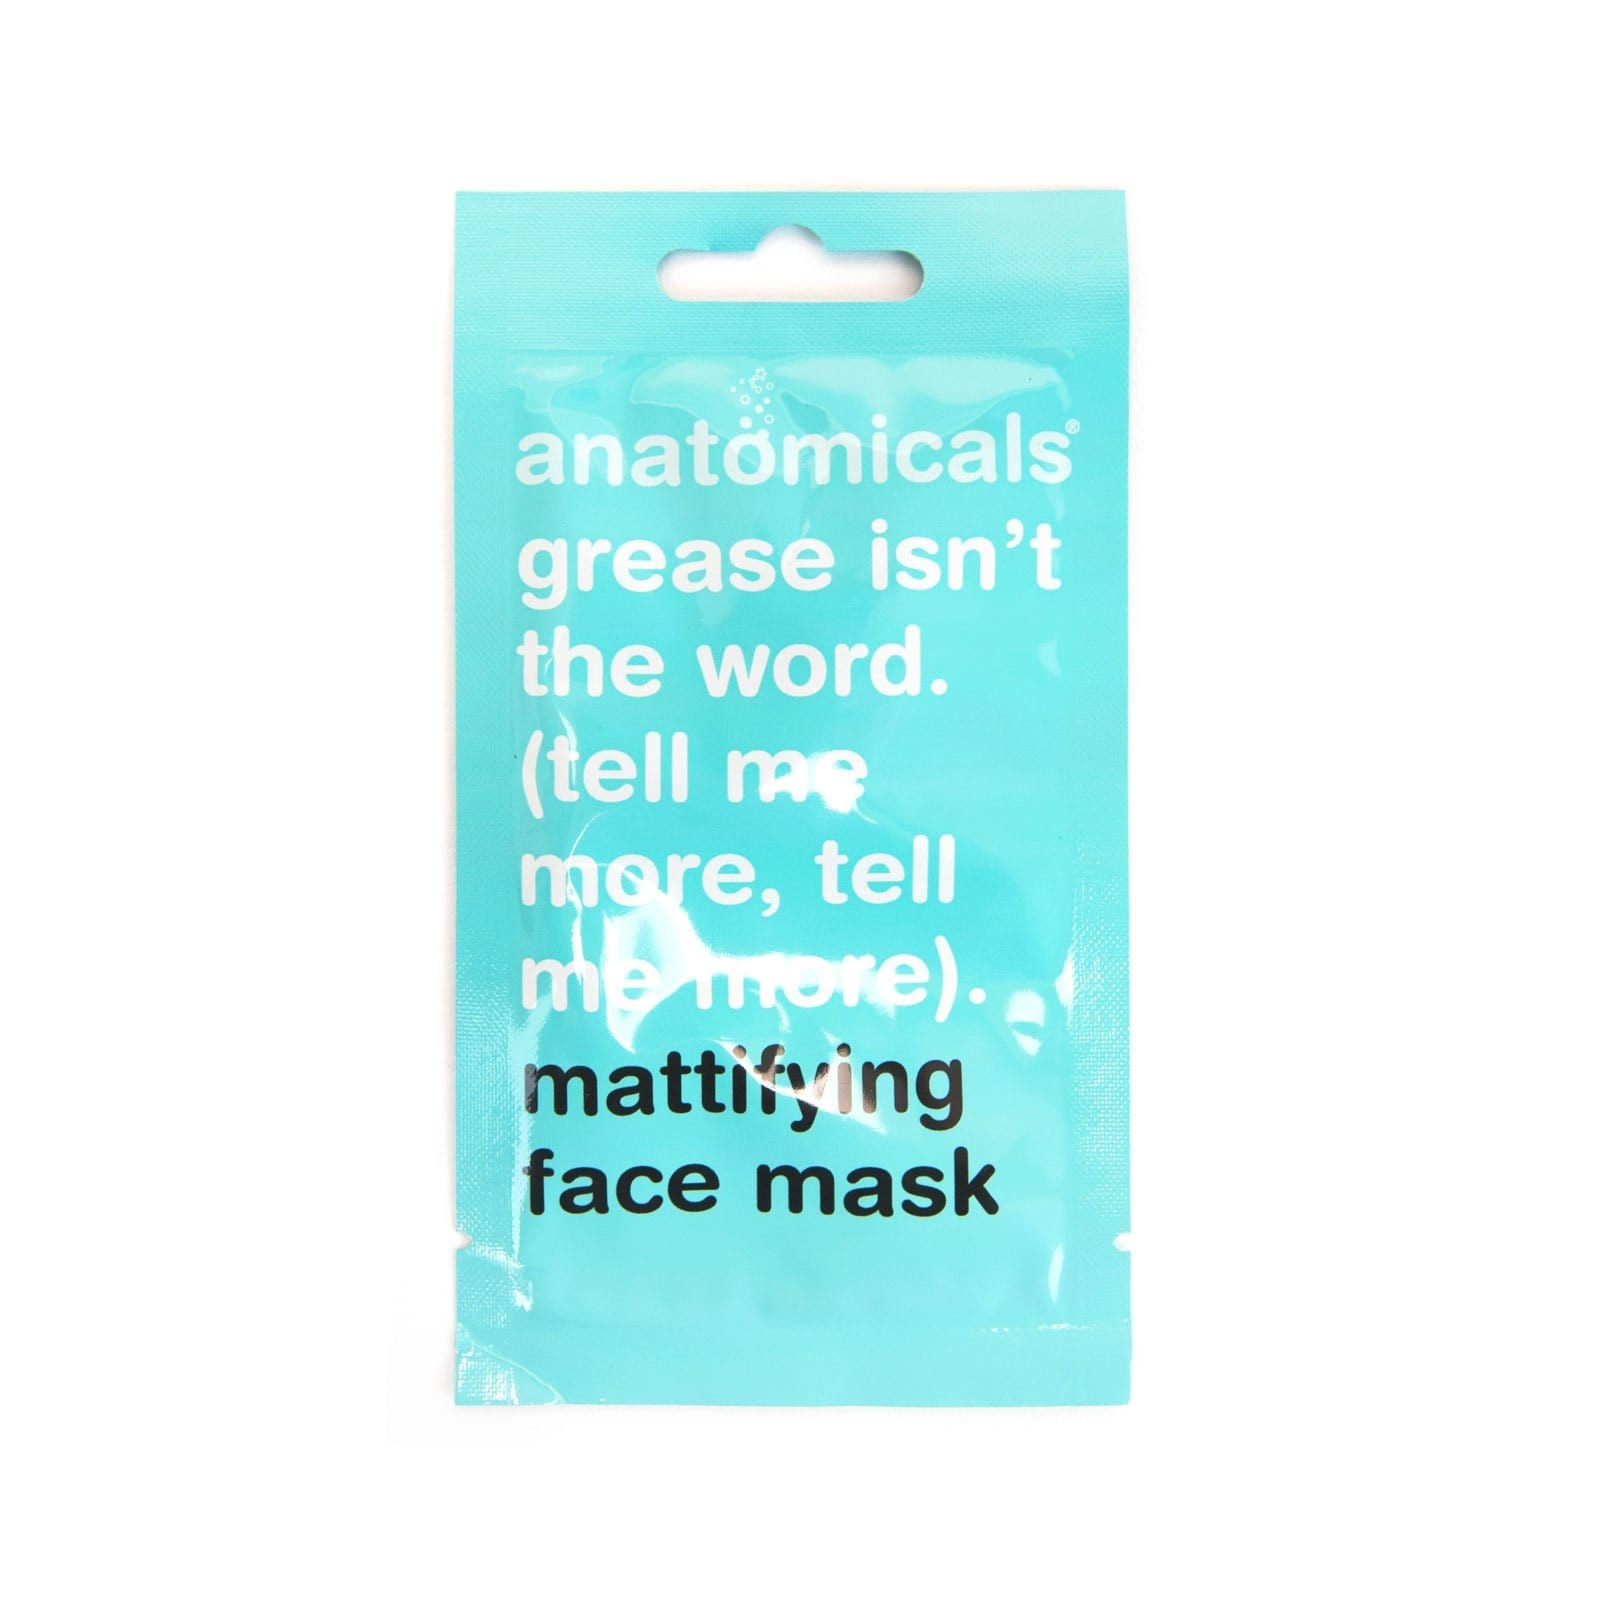 Grease Isn't The Word (Tell Me More, Tell Me More) Face Mask